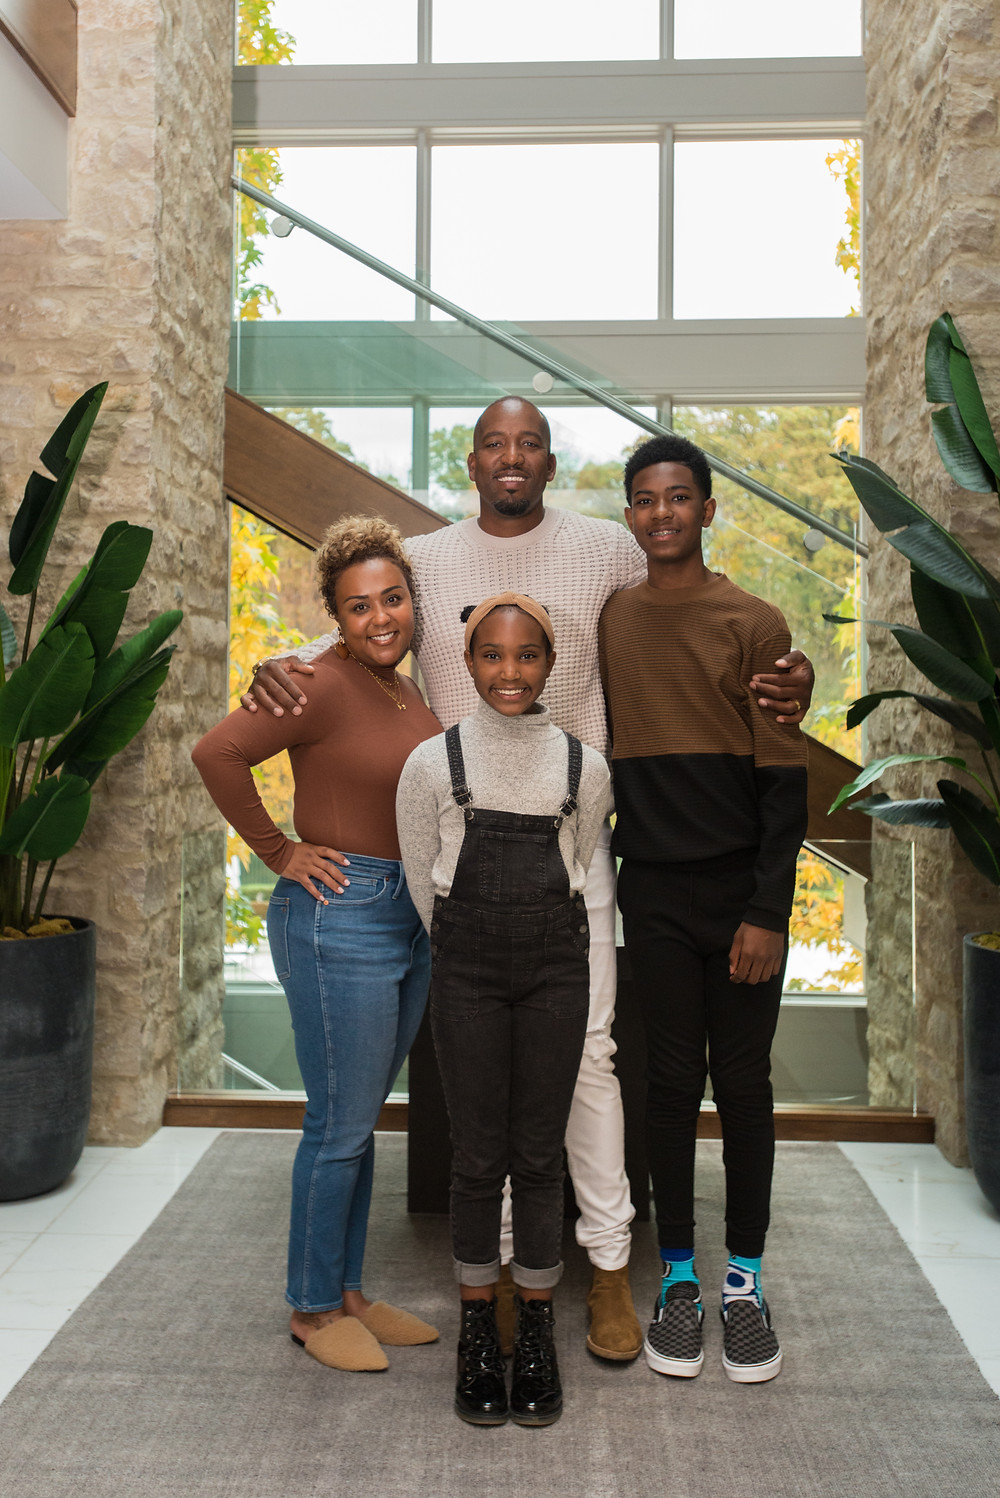 Michael Redd and family inside their house